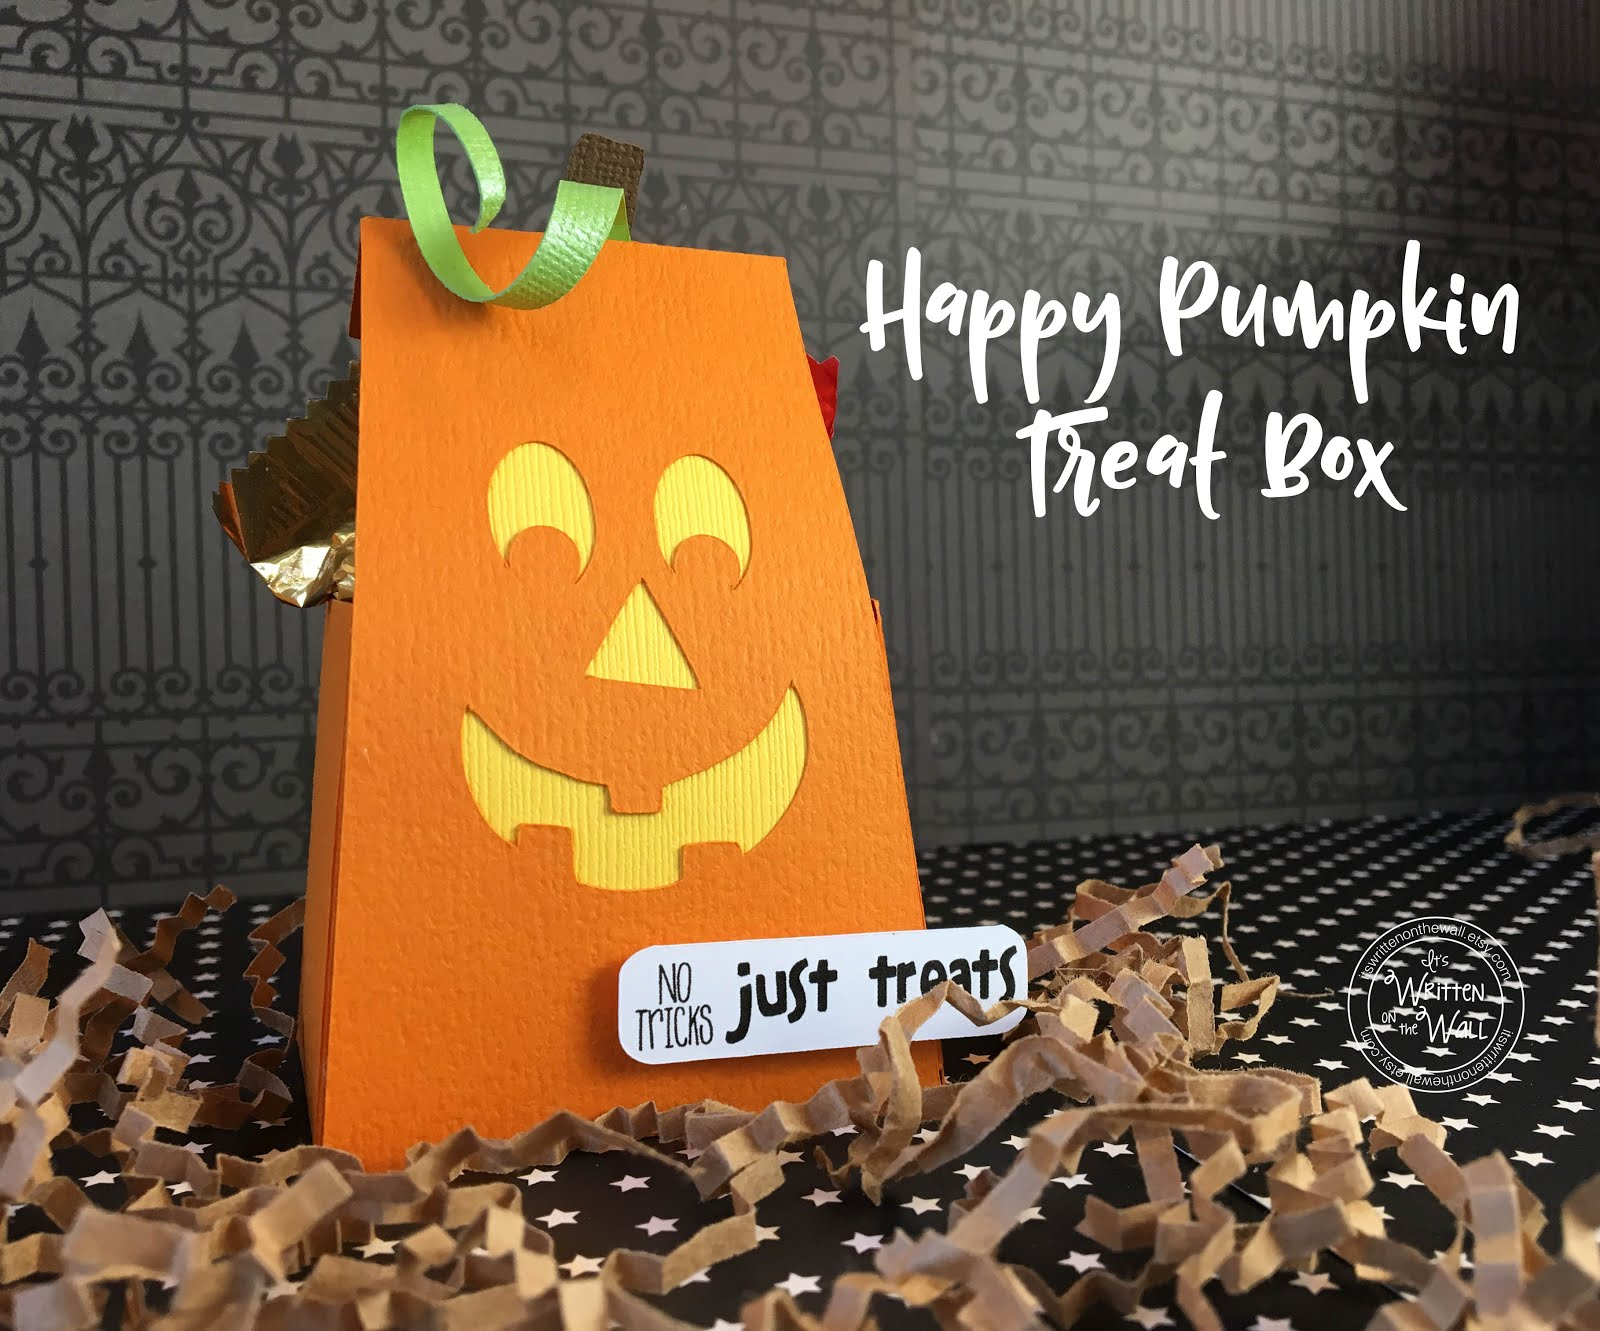 Happy Pumpkin Treat Box